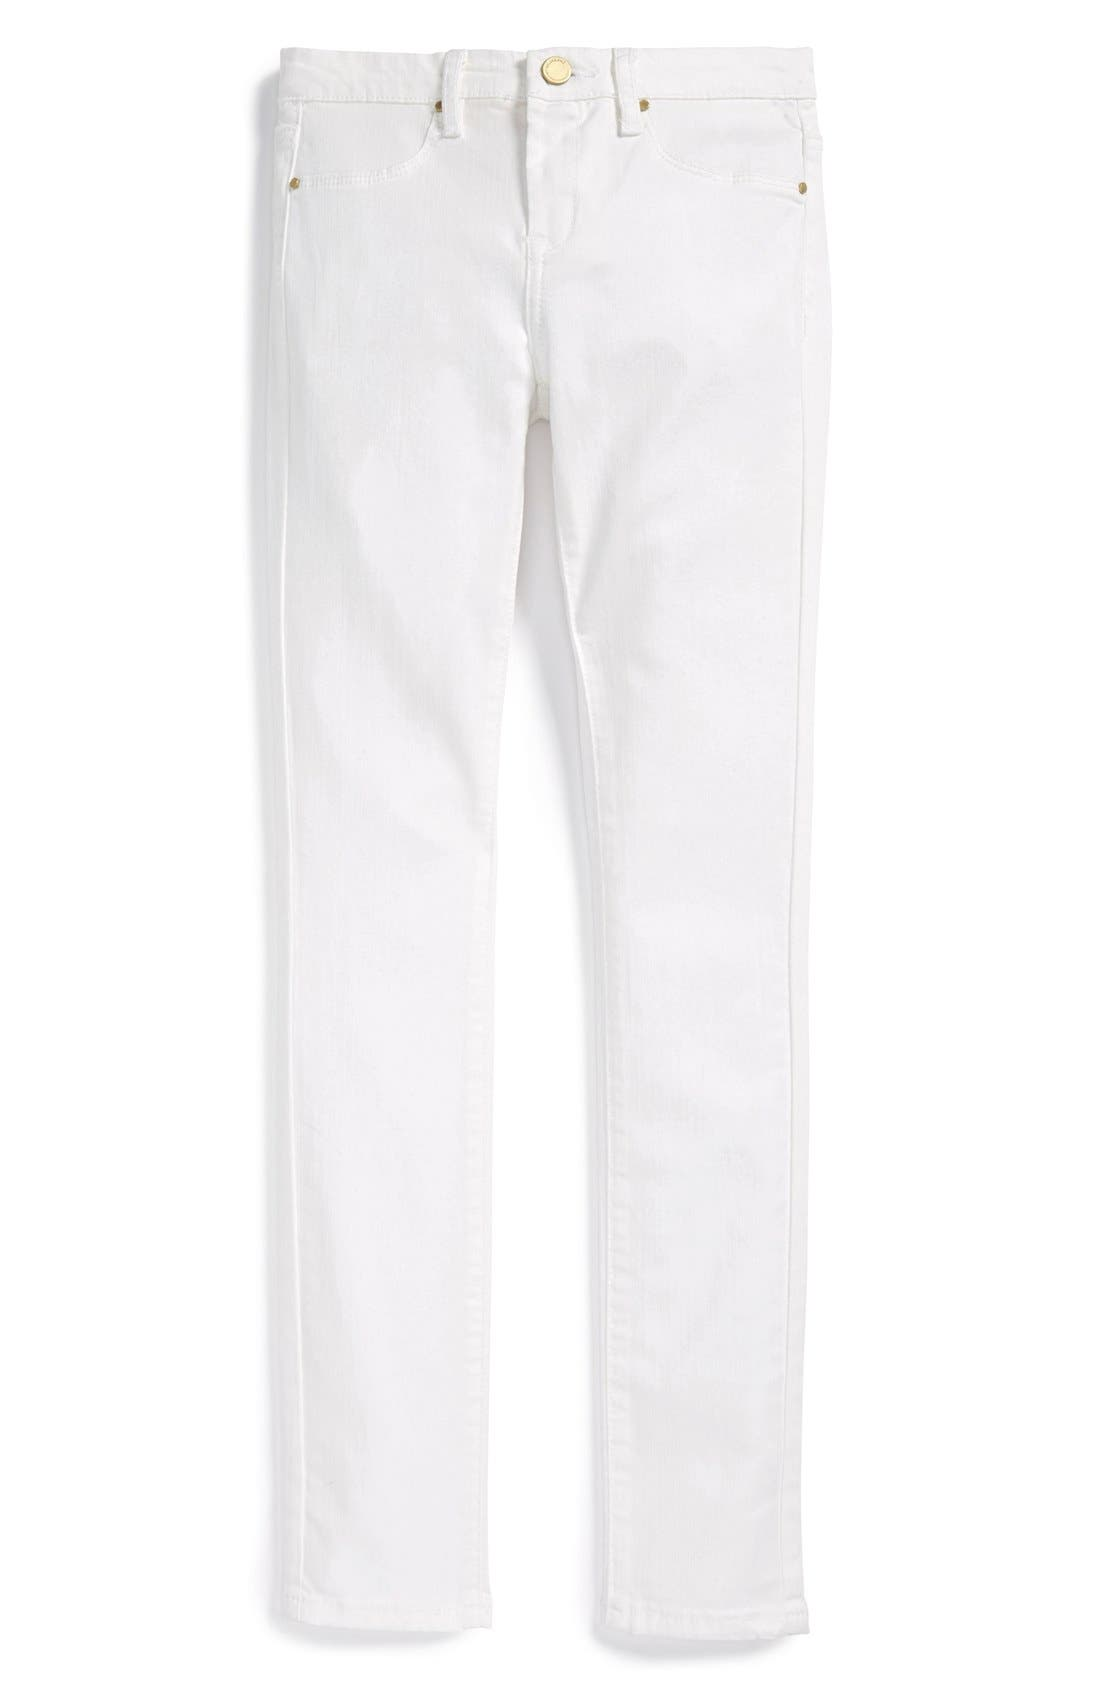 BLANKNYC Stretch Denim Skinny Jeans (Big Girls)